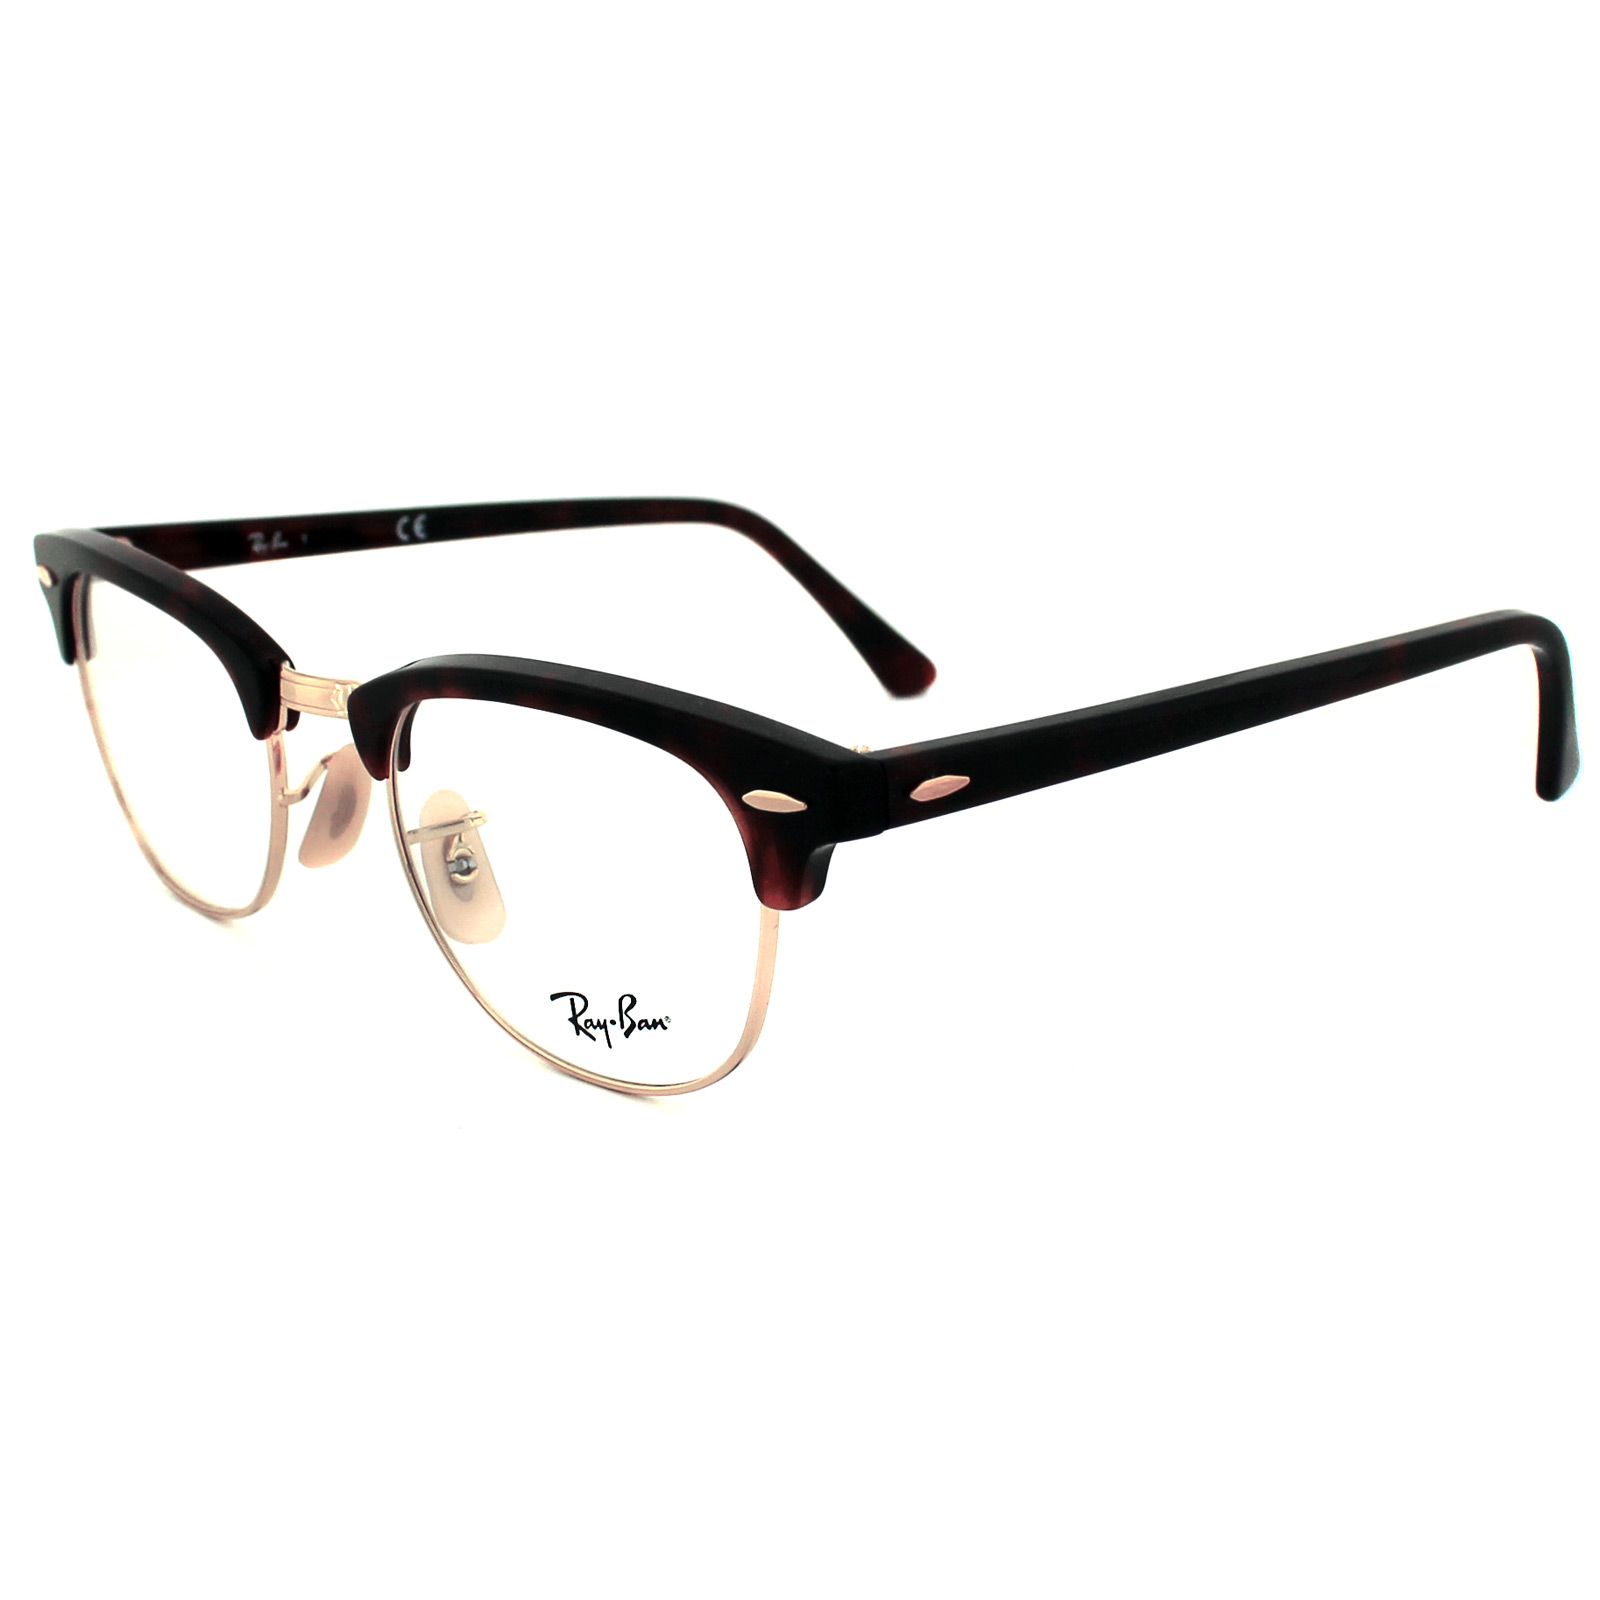 b159636a56 Sentinel Ray-Ban Glasses Frames 5154 Clubmaster 2372 Red Havana 51mm